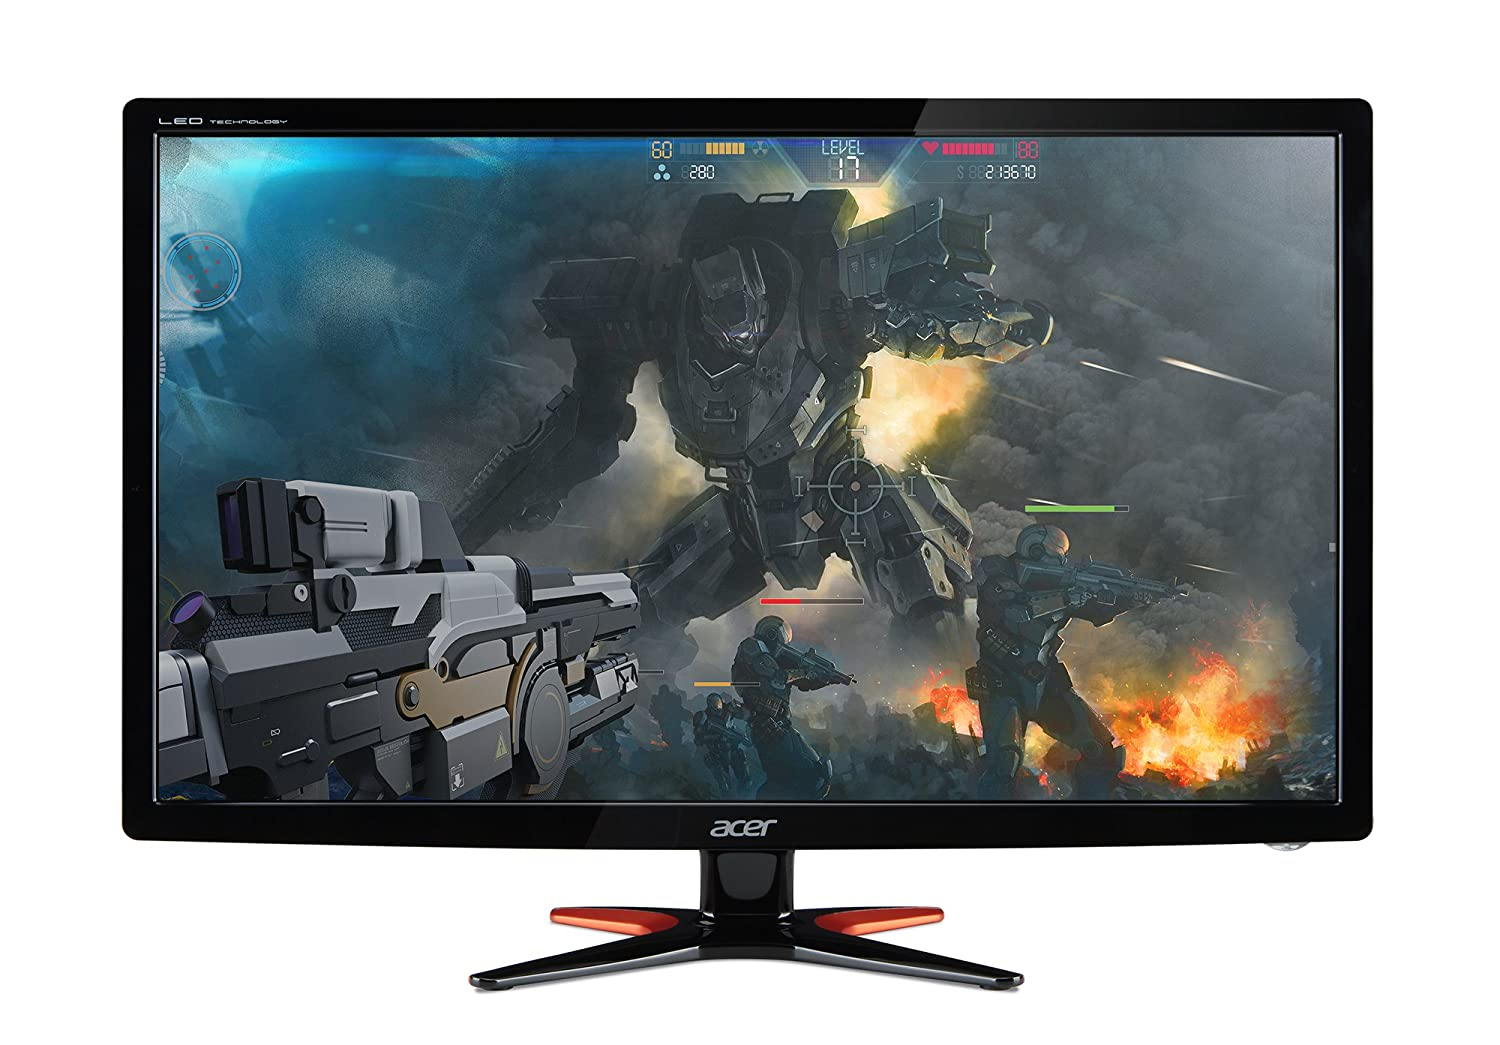 Acer GN246HL Bbid 24-Inch Full HD 1920 x1080 Widescreen 3D Gaming Monitor 144Hz Refresh Rate 1ms Response Time 1 x VGA, 1 x DVI, 1 x HDMI